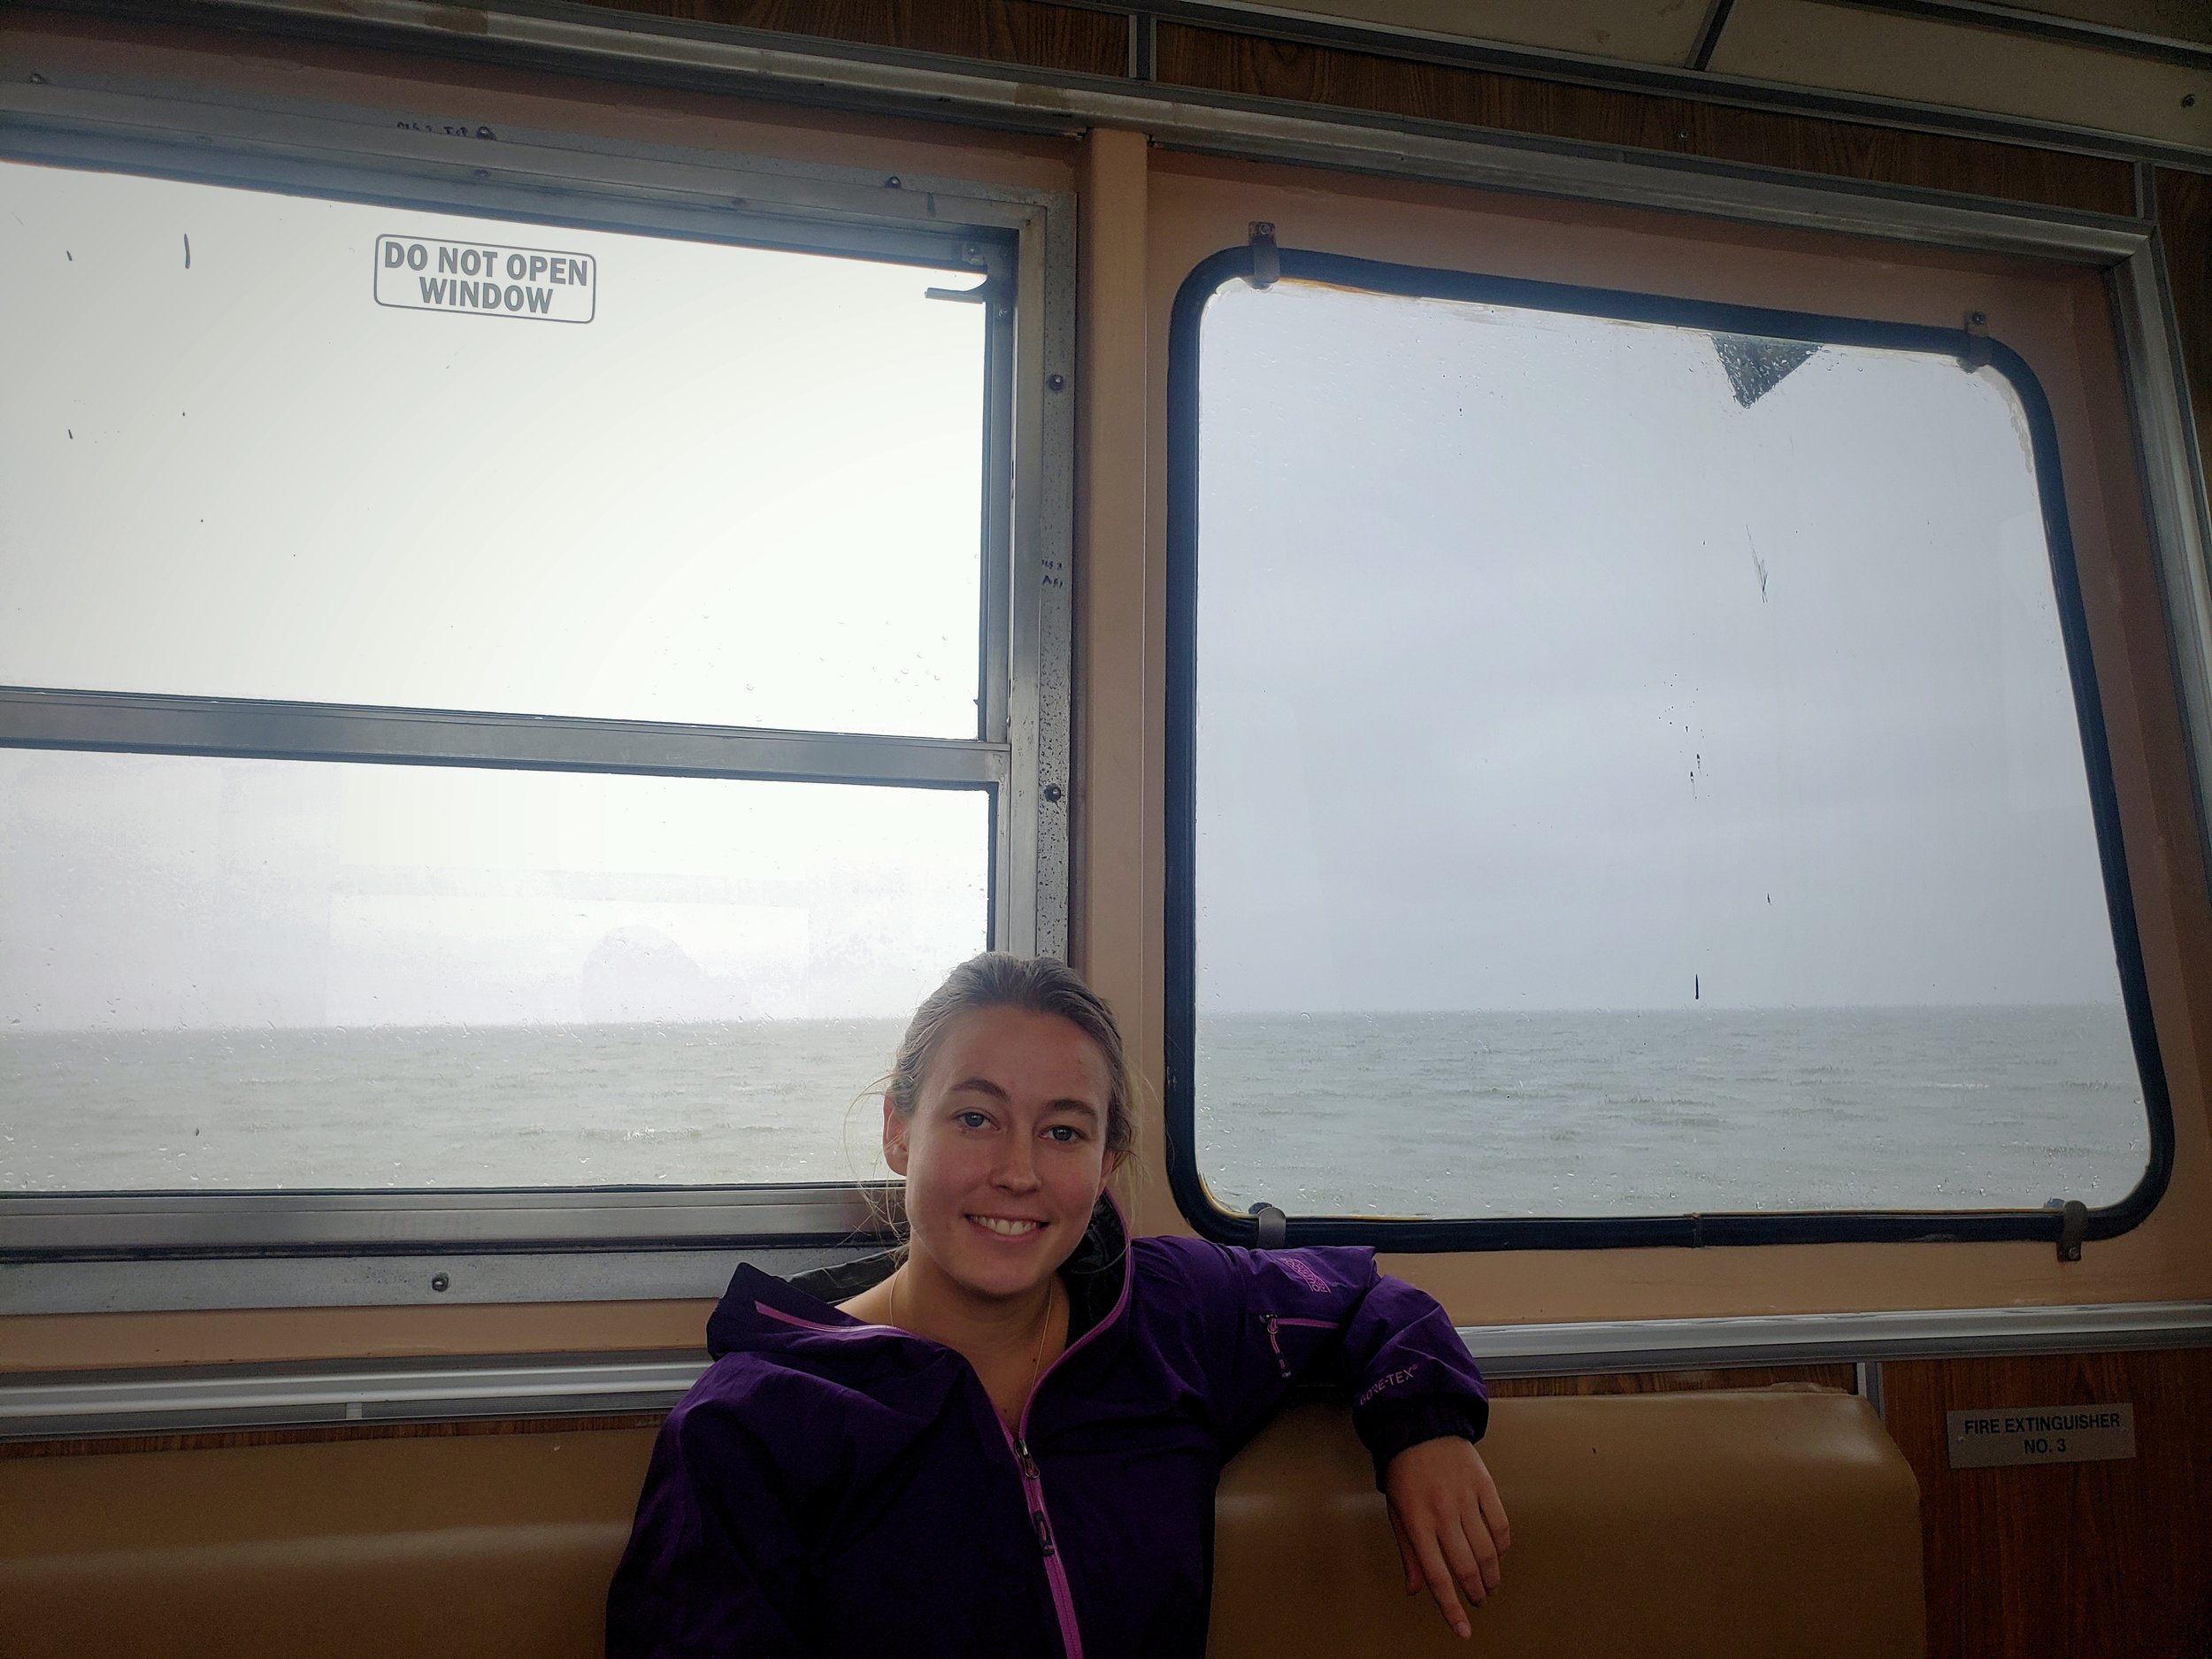 Riding the totally free Ocracoke Ferry is a fun activity for winter in the Outer Banks.